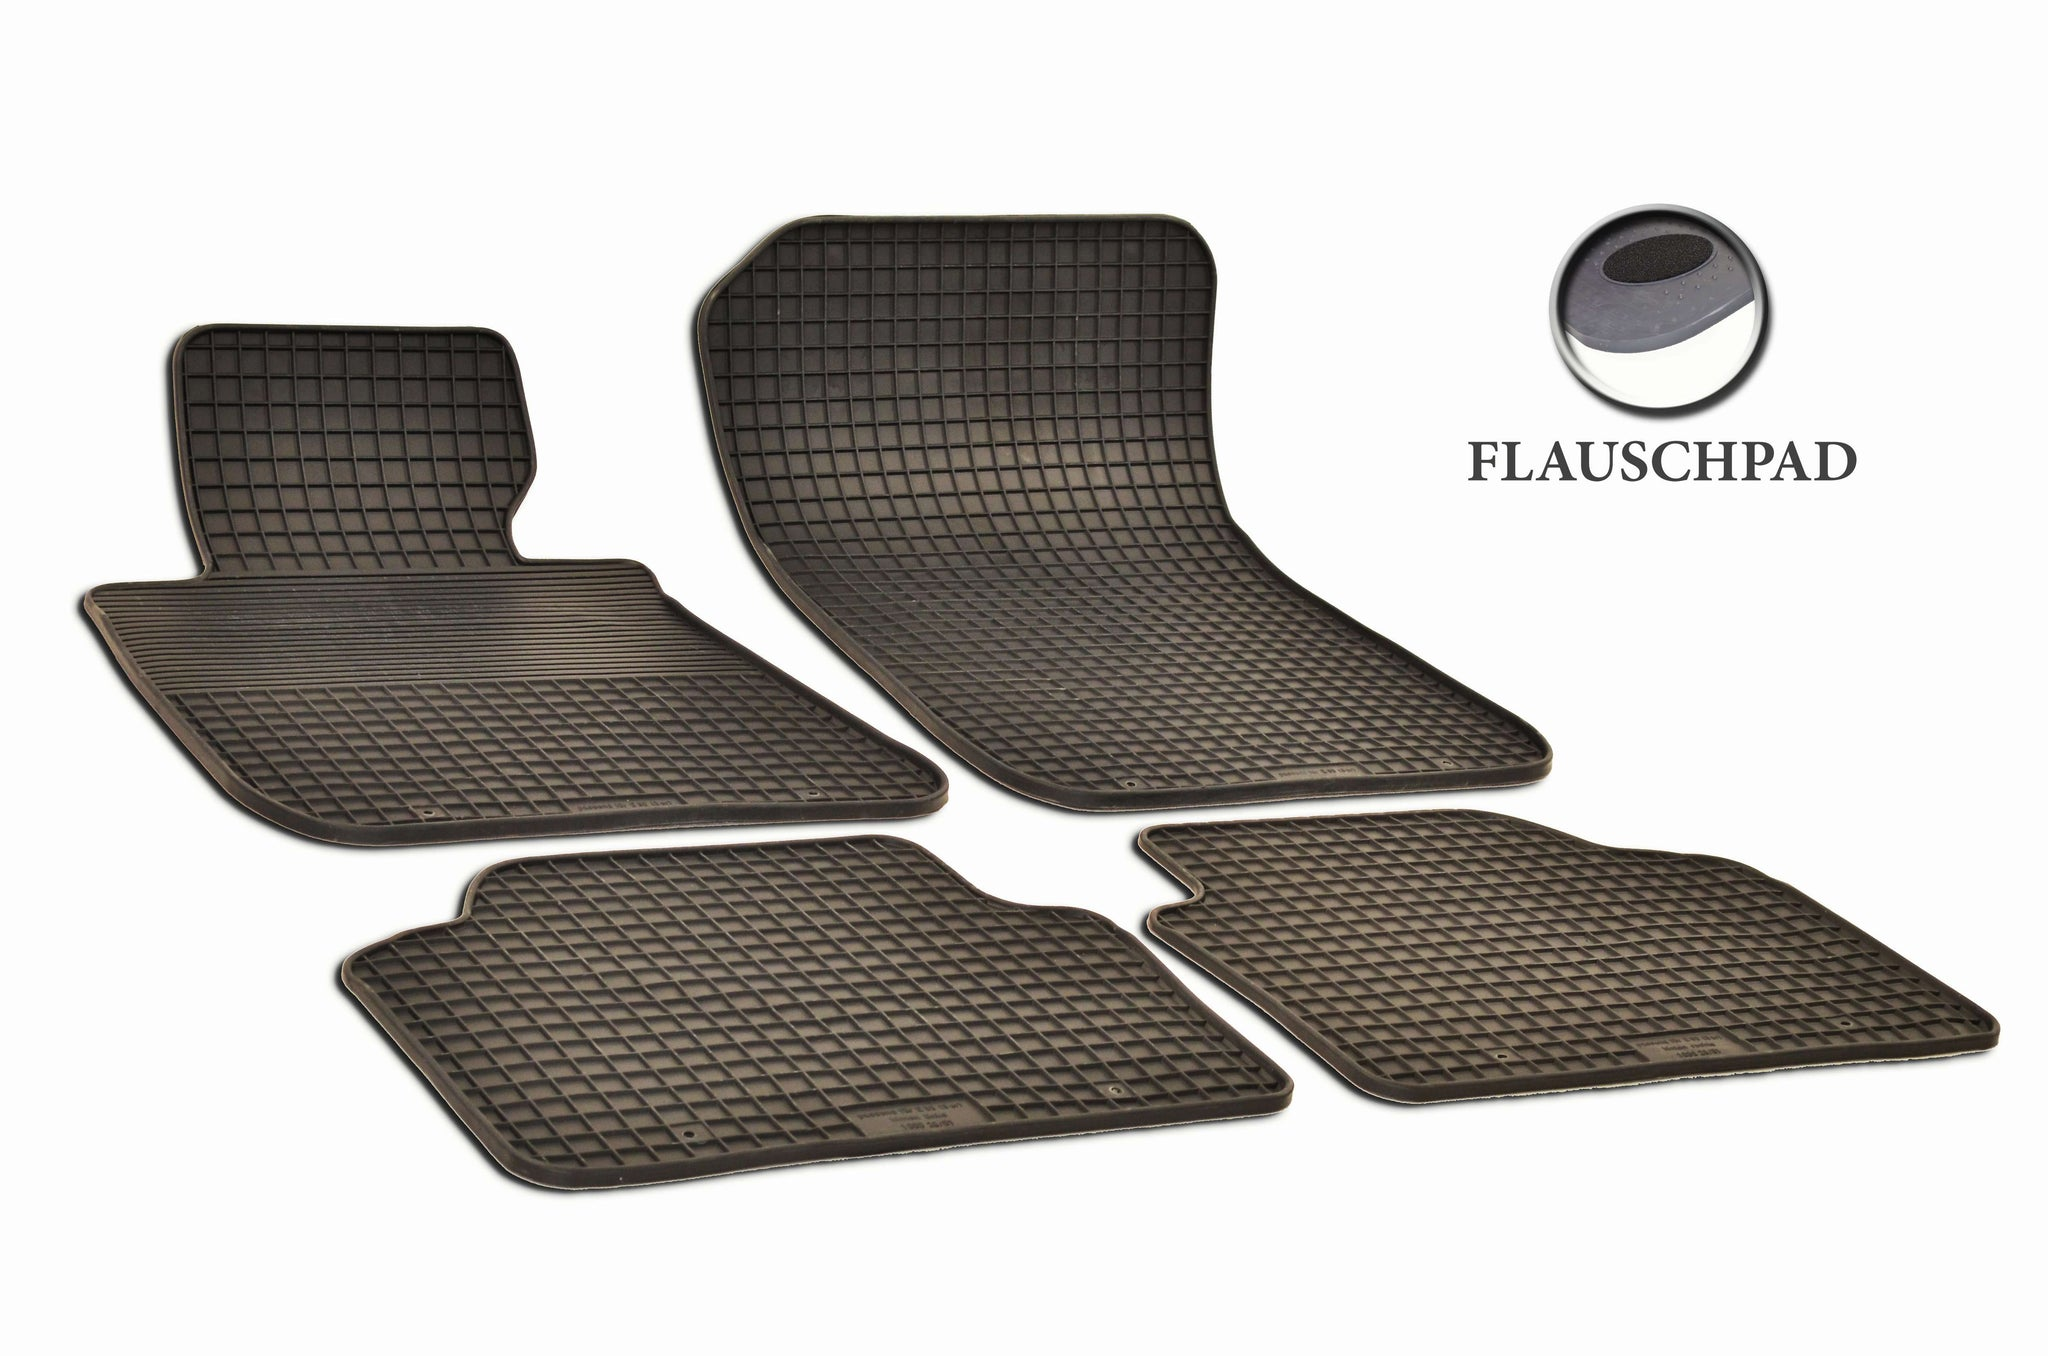 BMW 330i 2006 Sedan E90 Set of 4 Black Rubber OE Fit All Weather Car Floor Mats